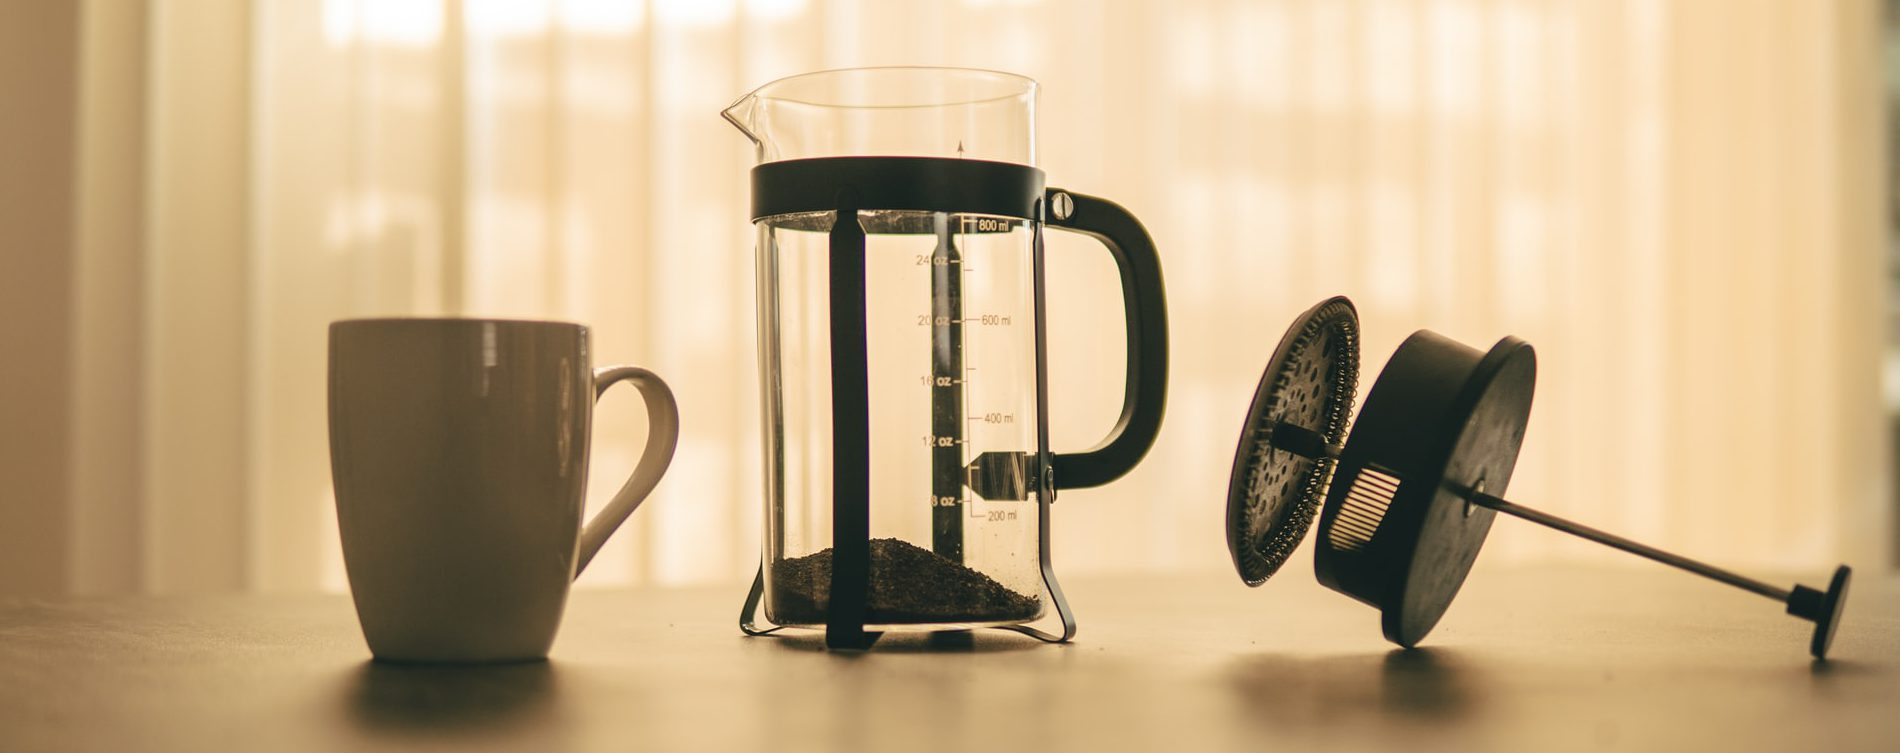 French press with ground coffee and a cup on a wooden surface